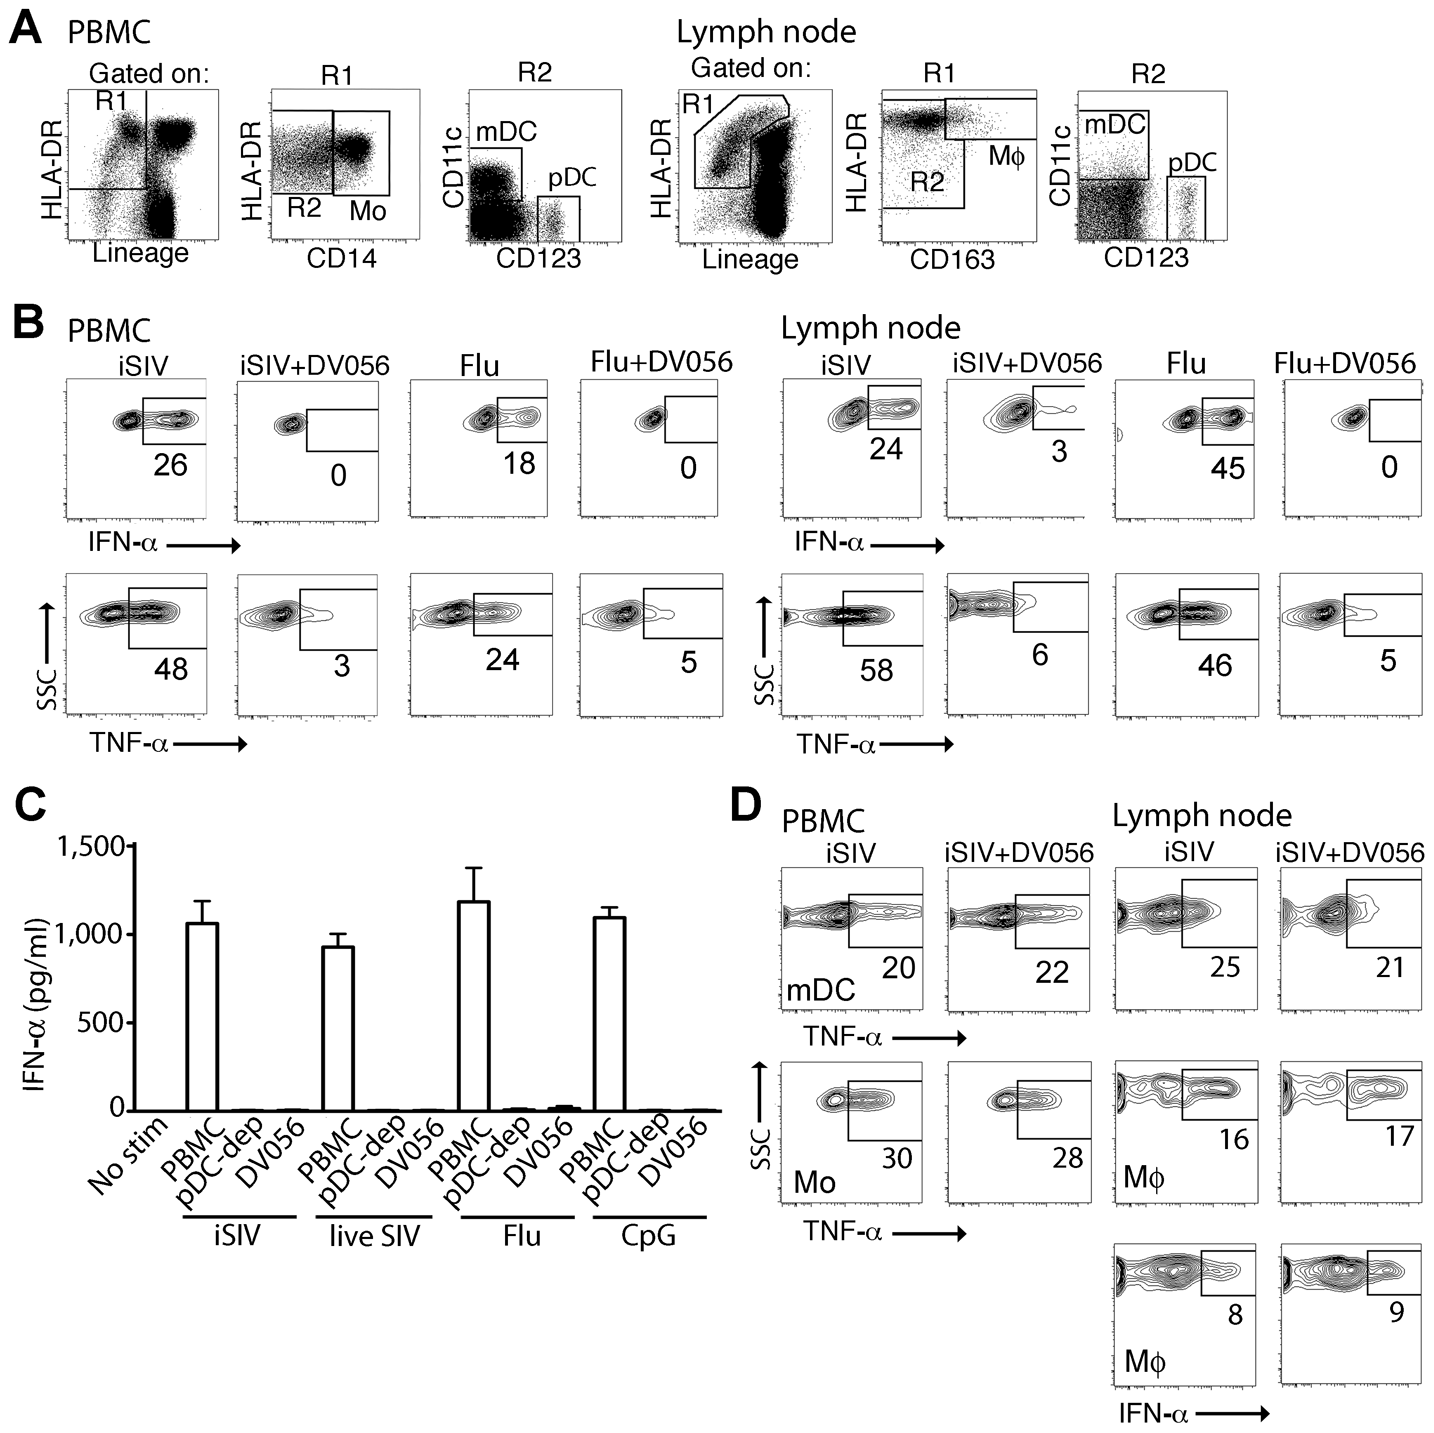 TLR7 and TLR9 antagonist selectively blocks proinflammatory cytokine production from uninfected rhesus macaque pDC.